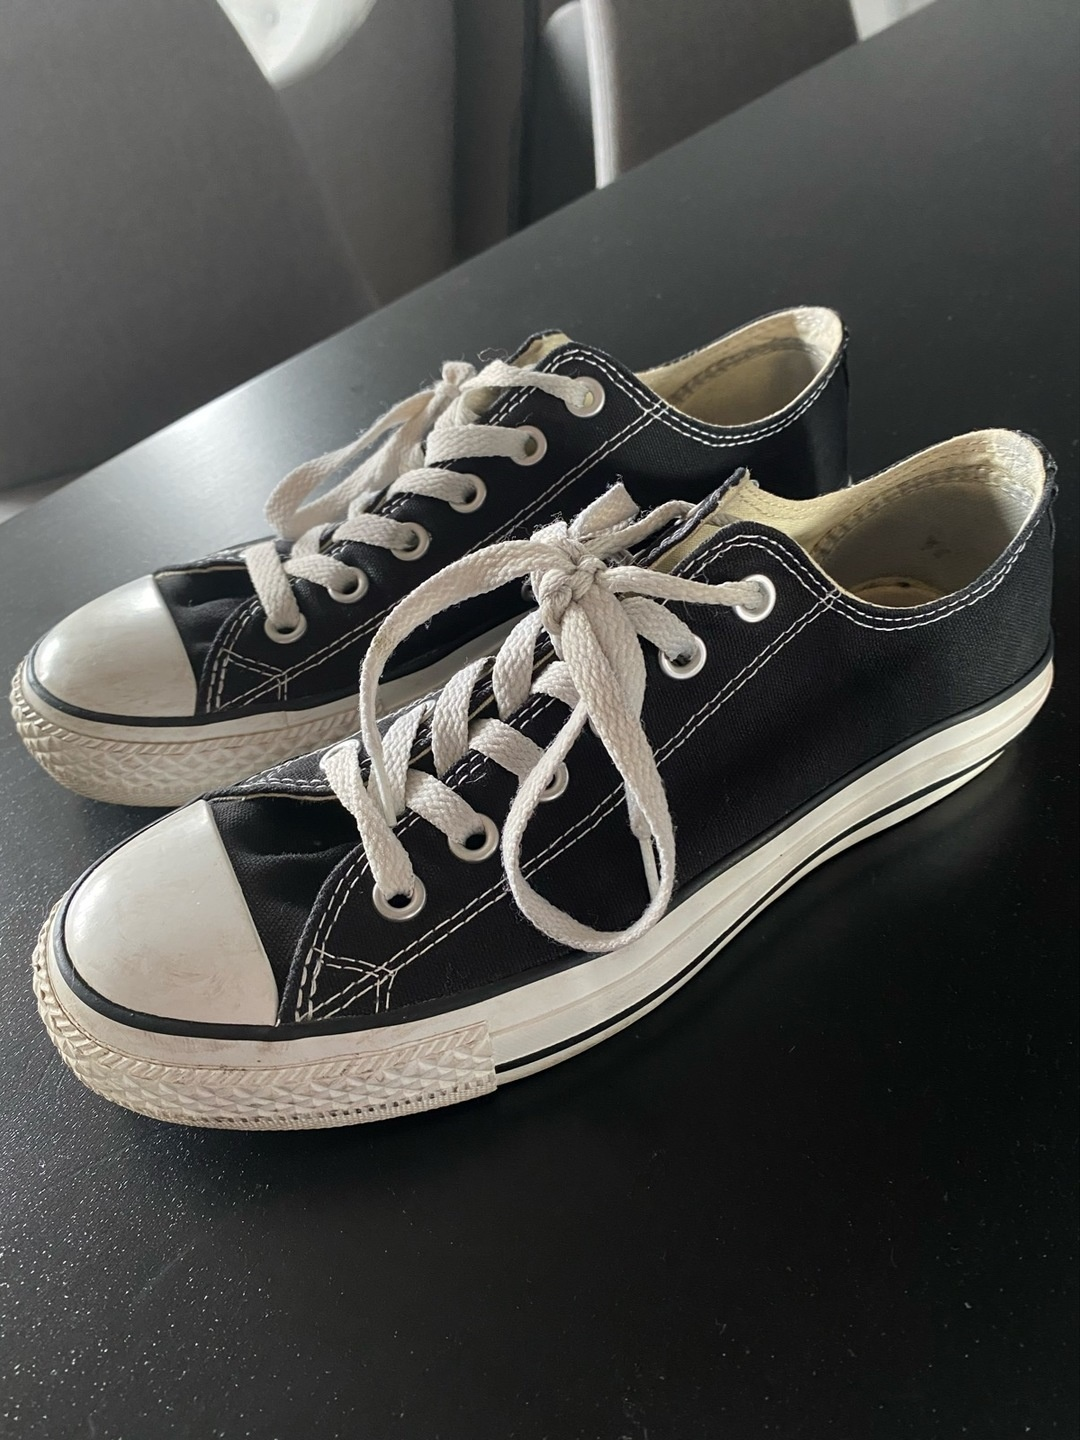 Damers sneakers - CONVERSE photo 1